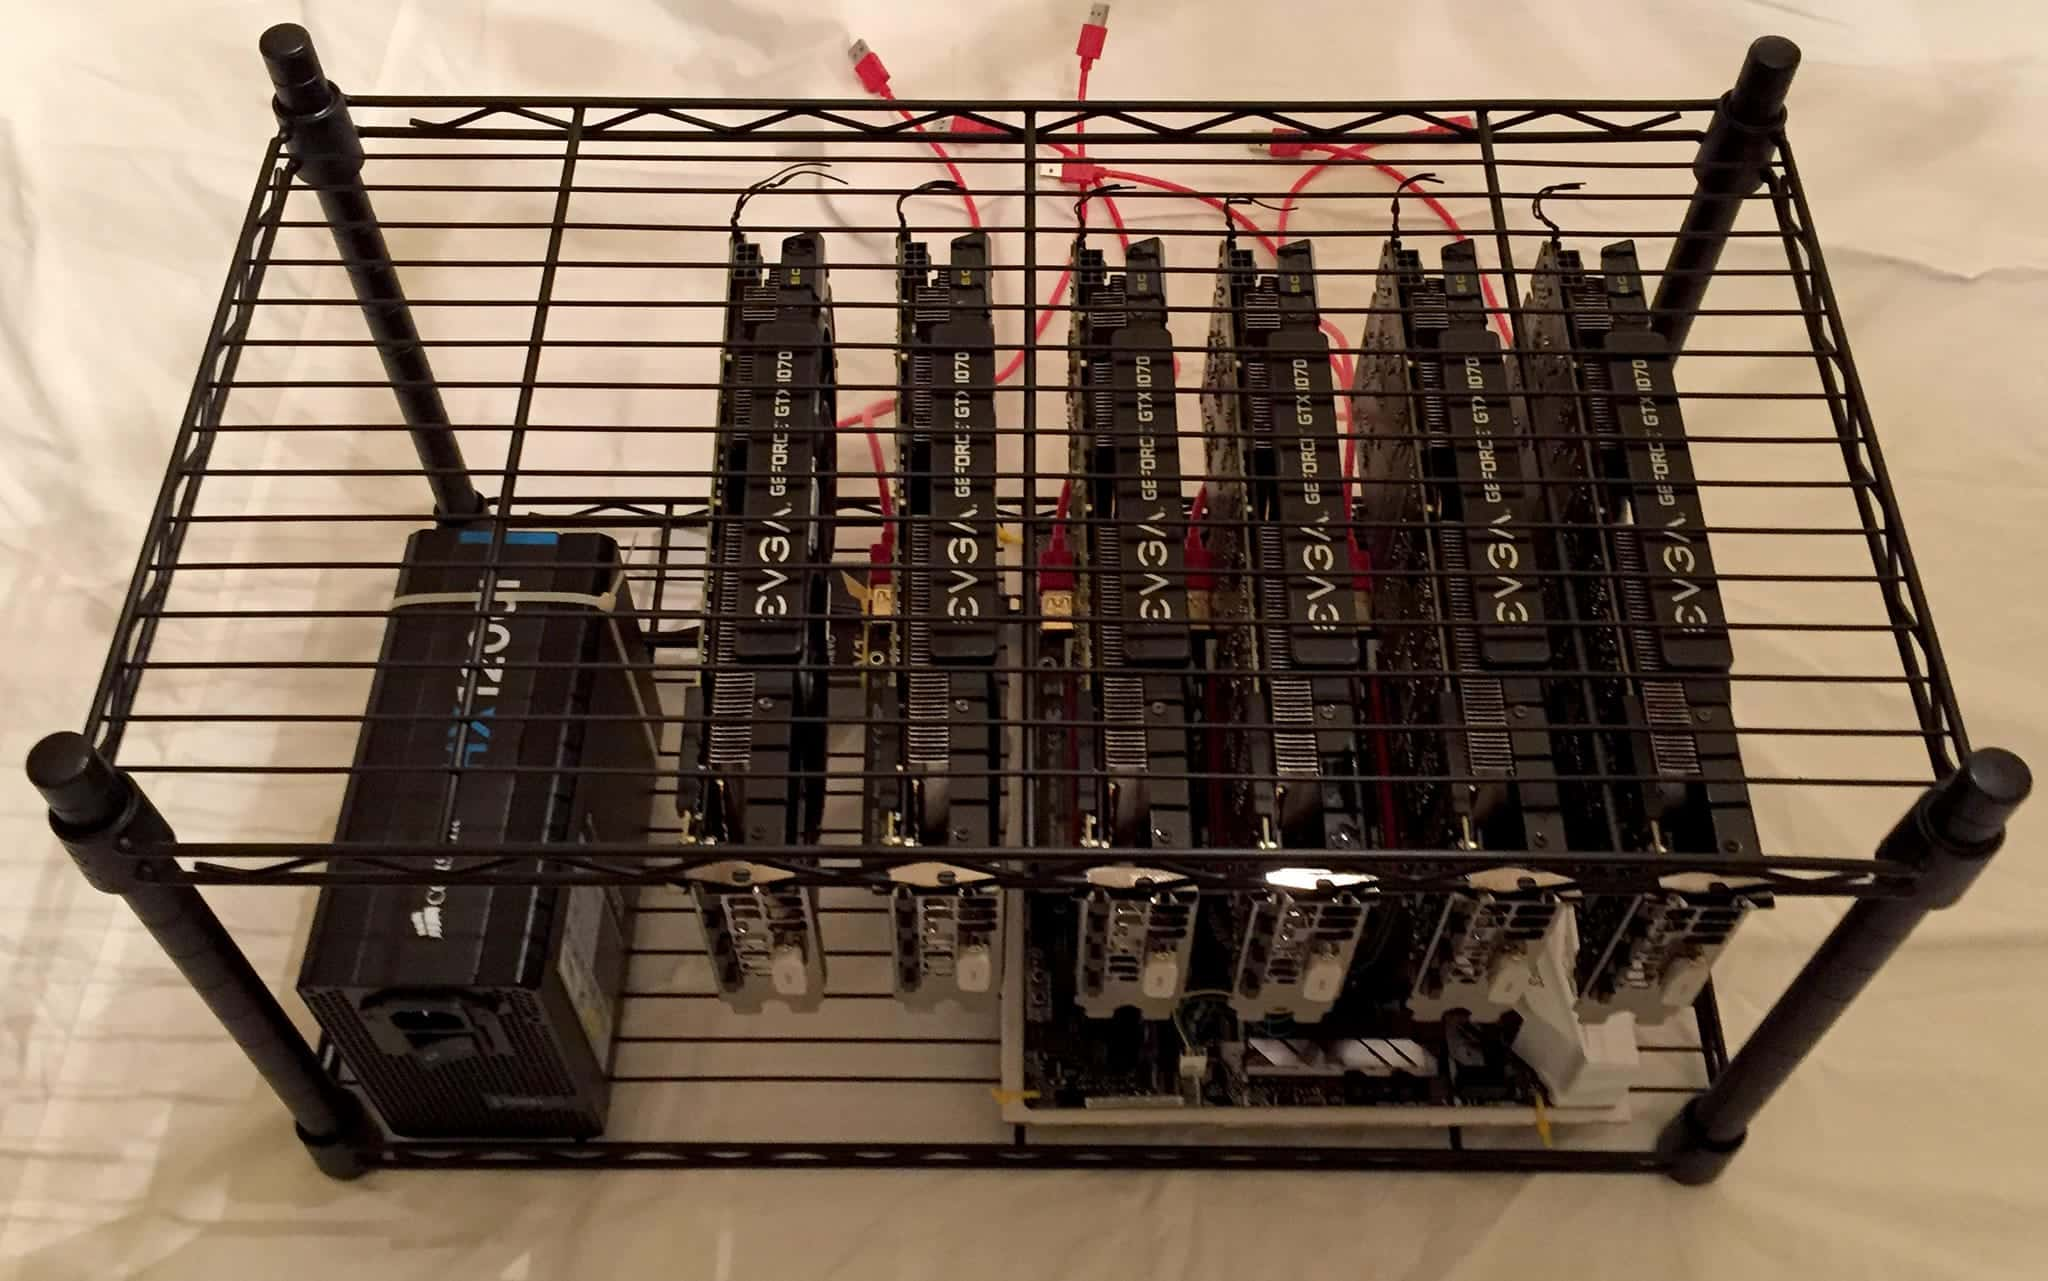 How to Build a 6 GPU Mining Rig – Part 3: BIOS and OS [2019